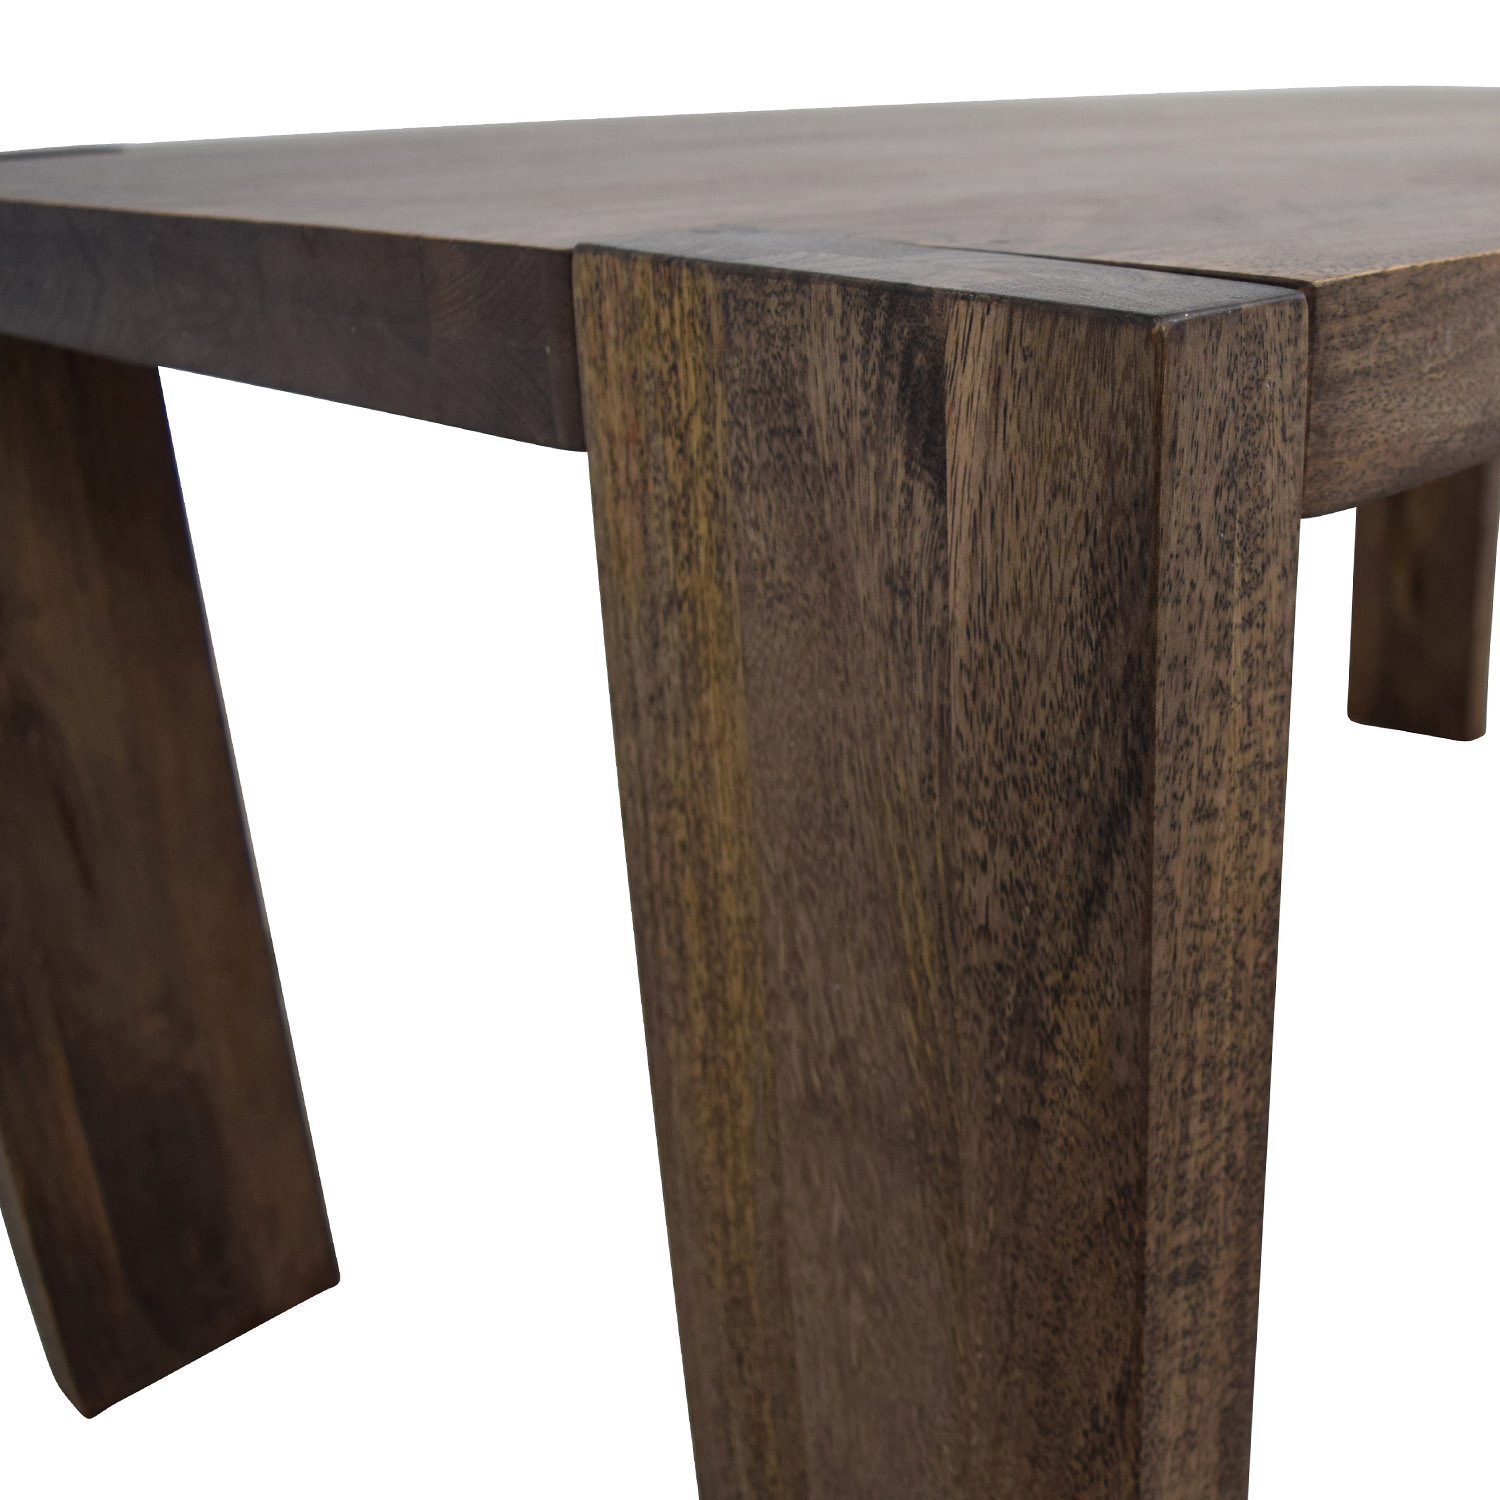 38% OFF CB2 CB2 Blox Dining Table Tables